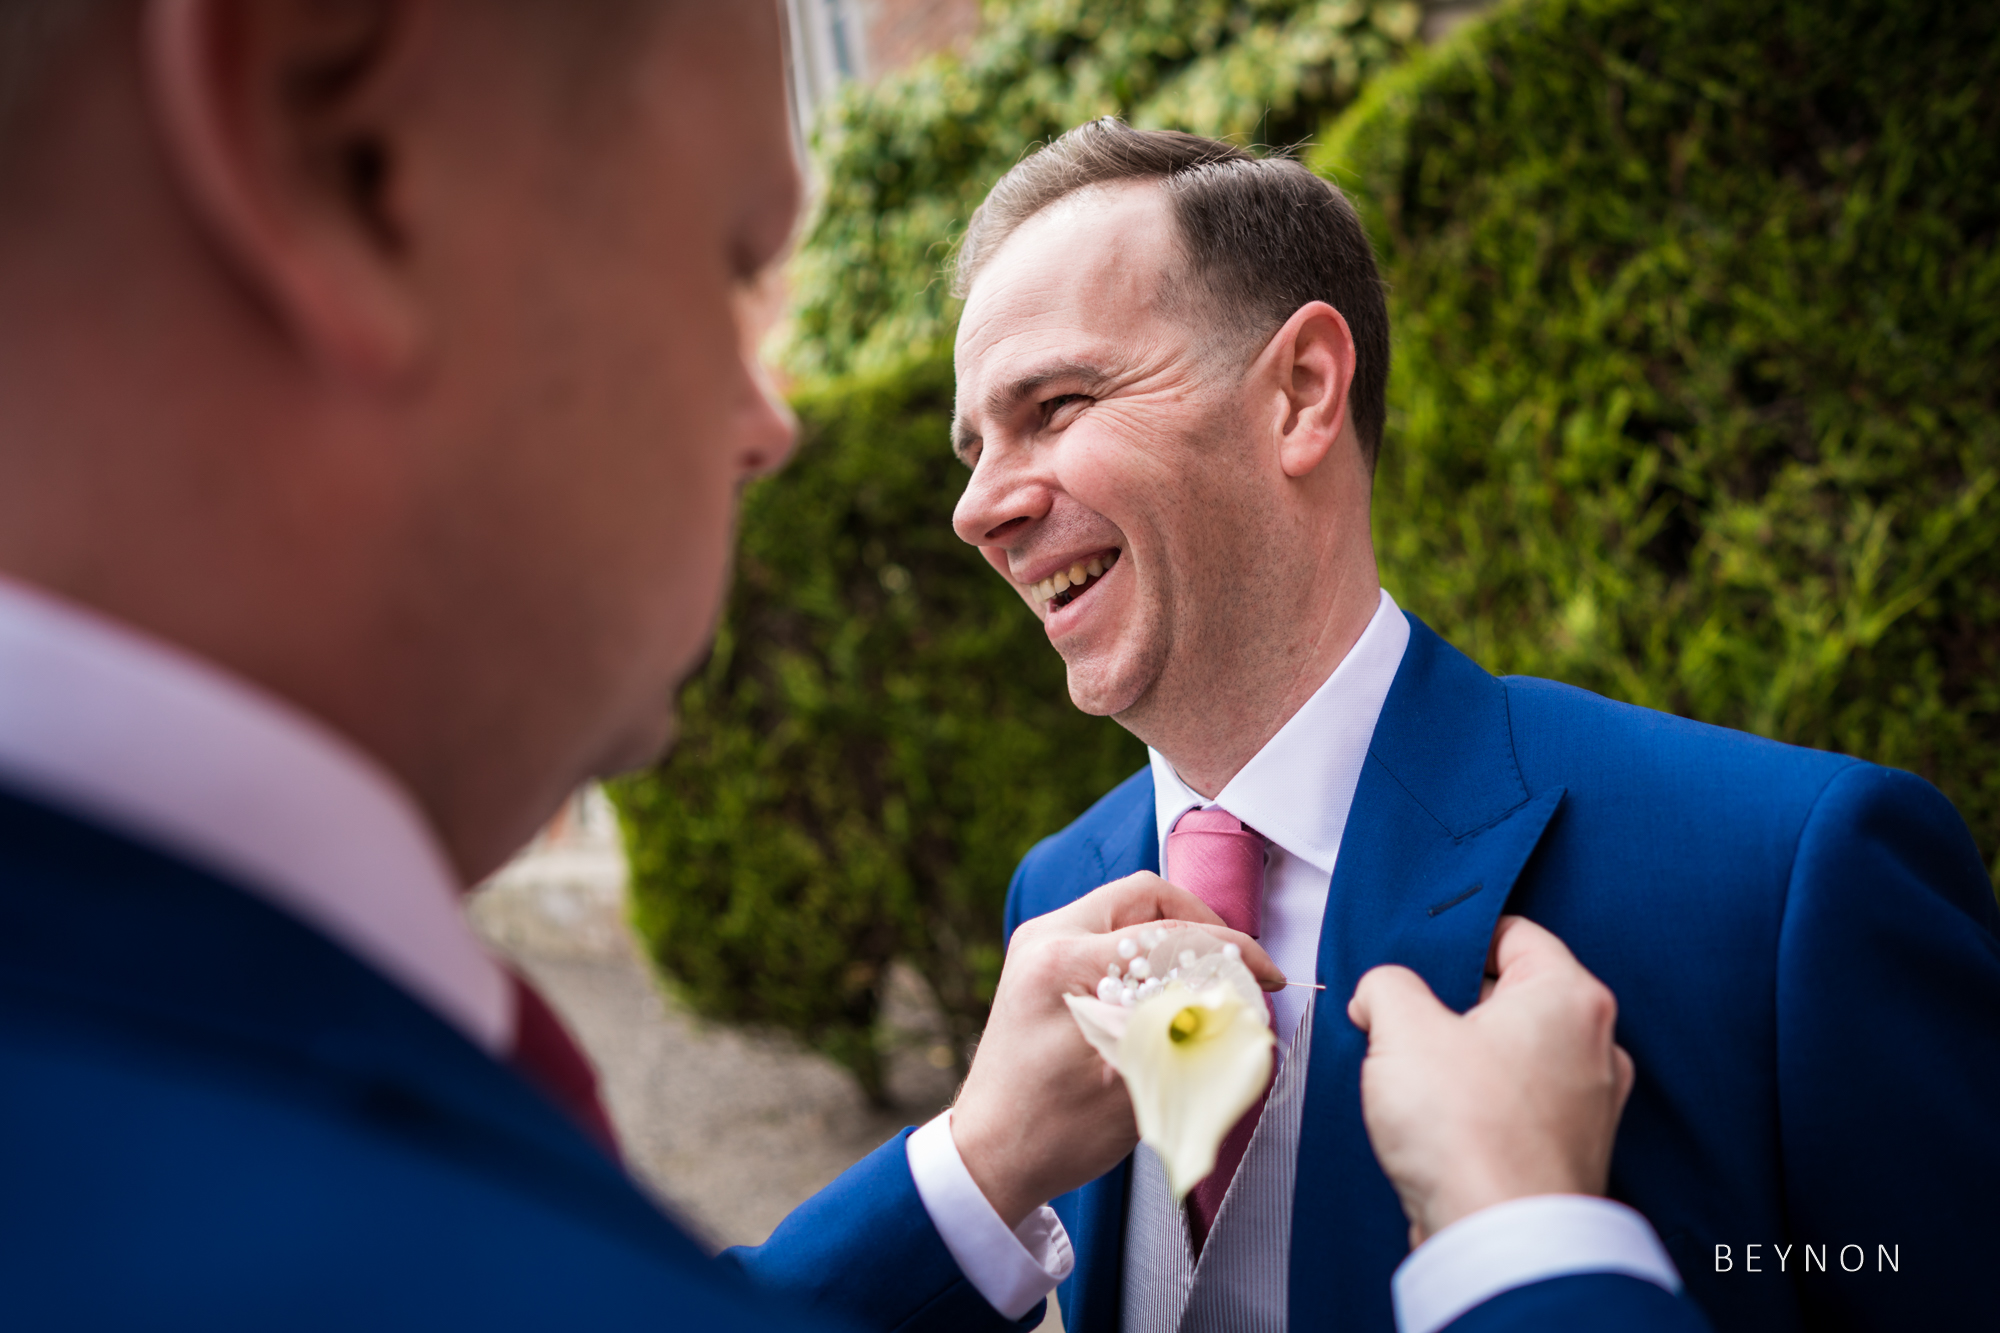 The groom has his buttonhole fix in place